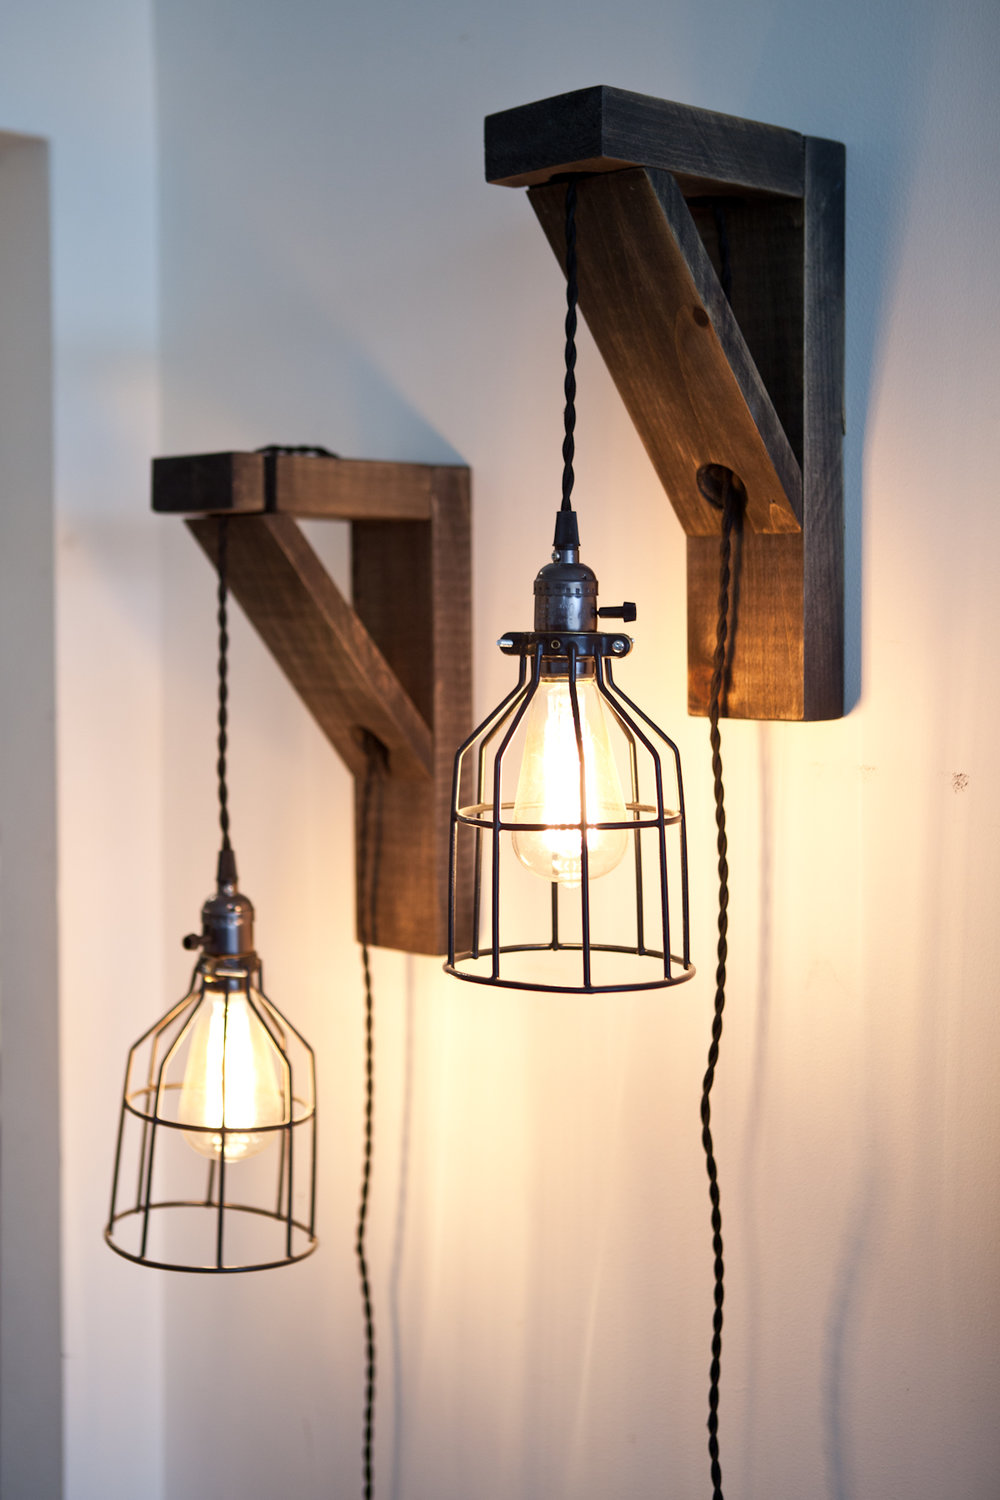 Wall sconces - build and paint workshop! Wednesday March 27th, 6-8pm.